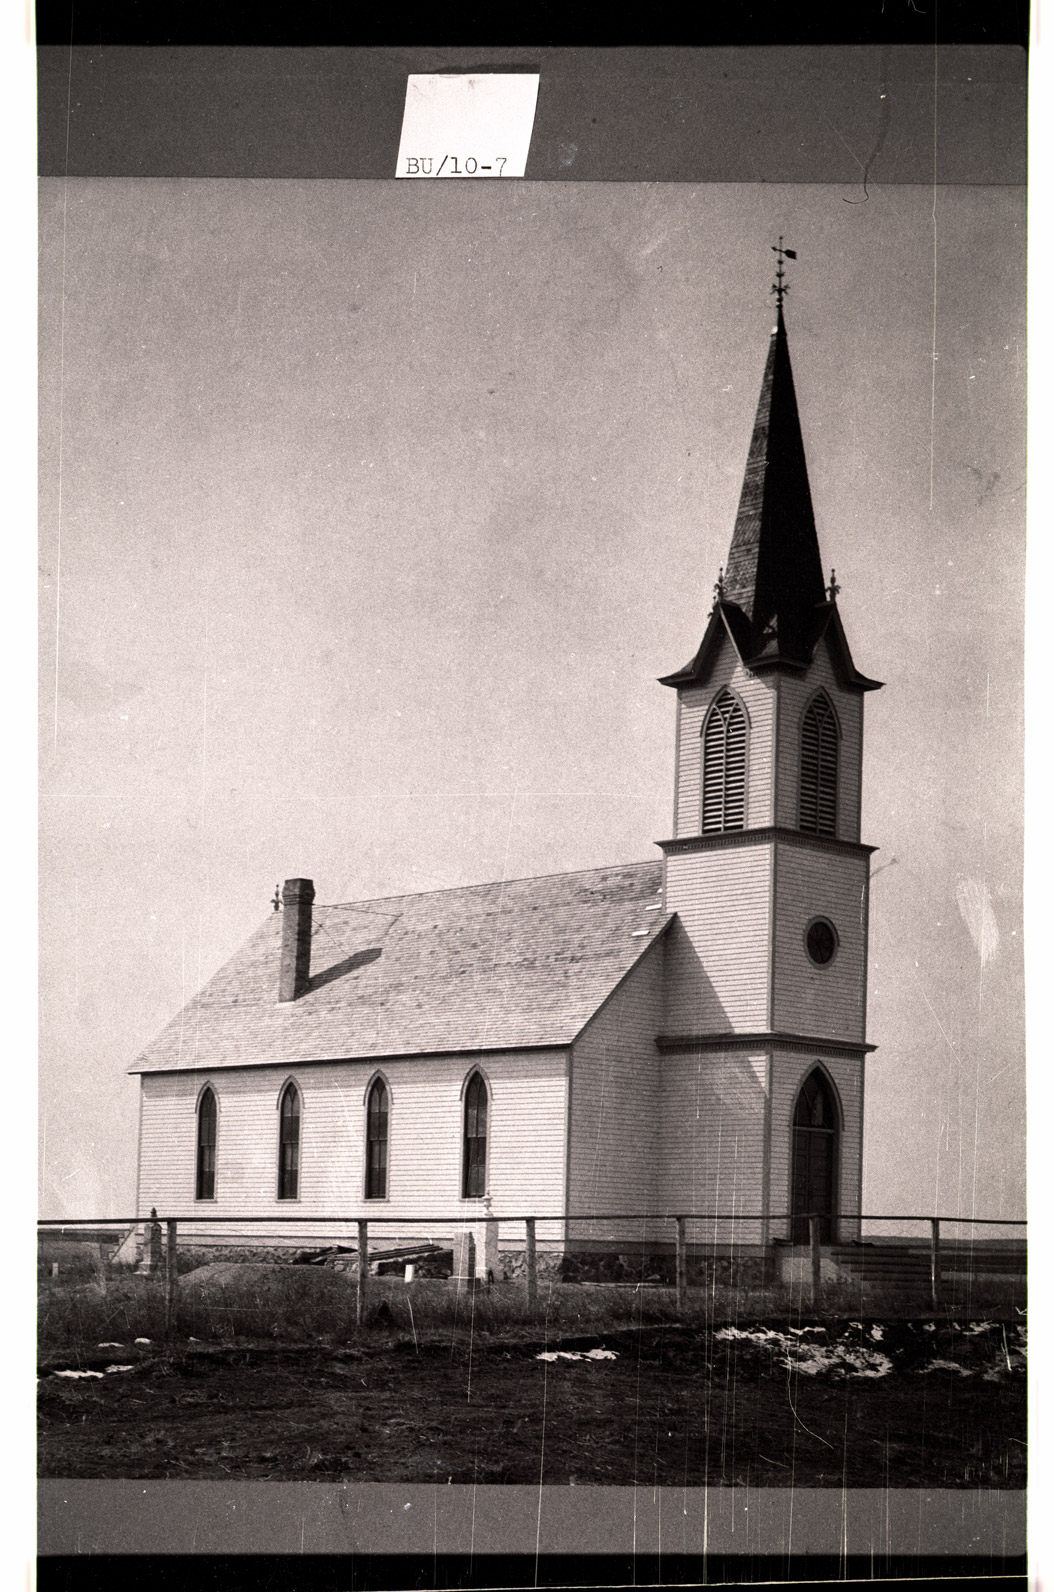 0032-BU-10-07  Elm Grove Lutheran Church, McCanna, 1900